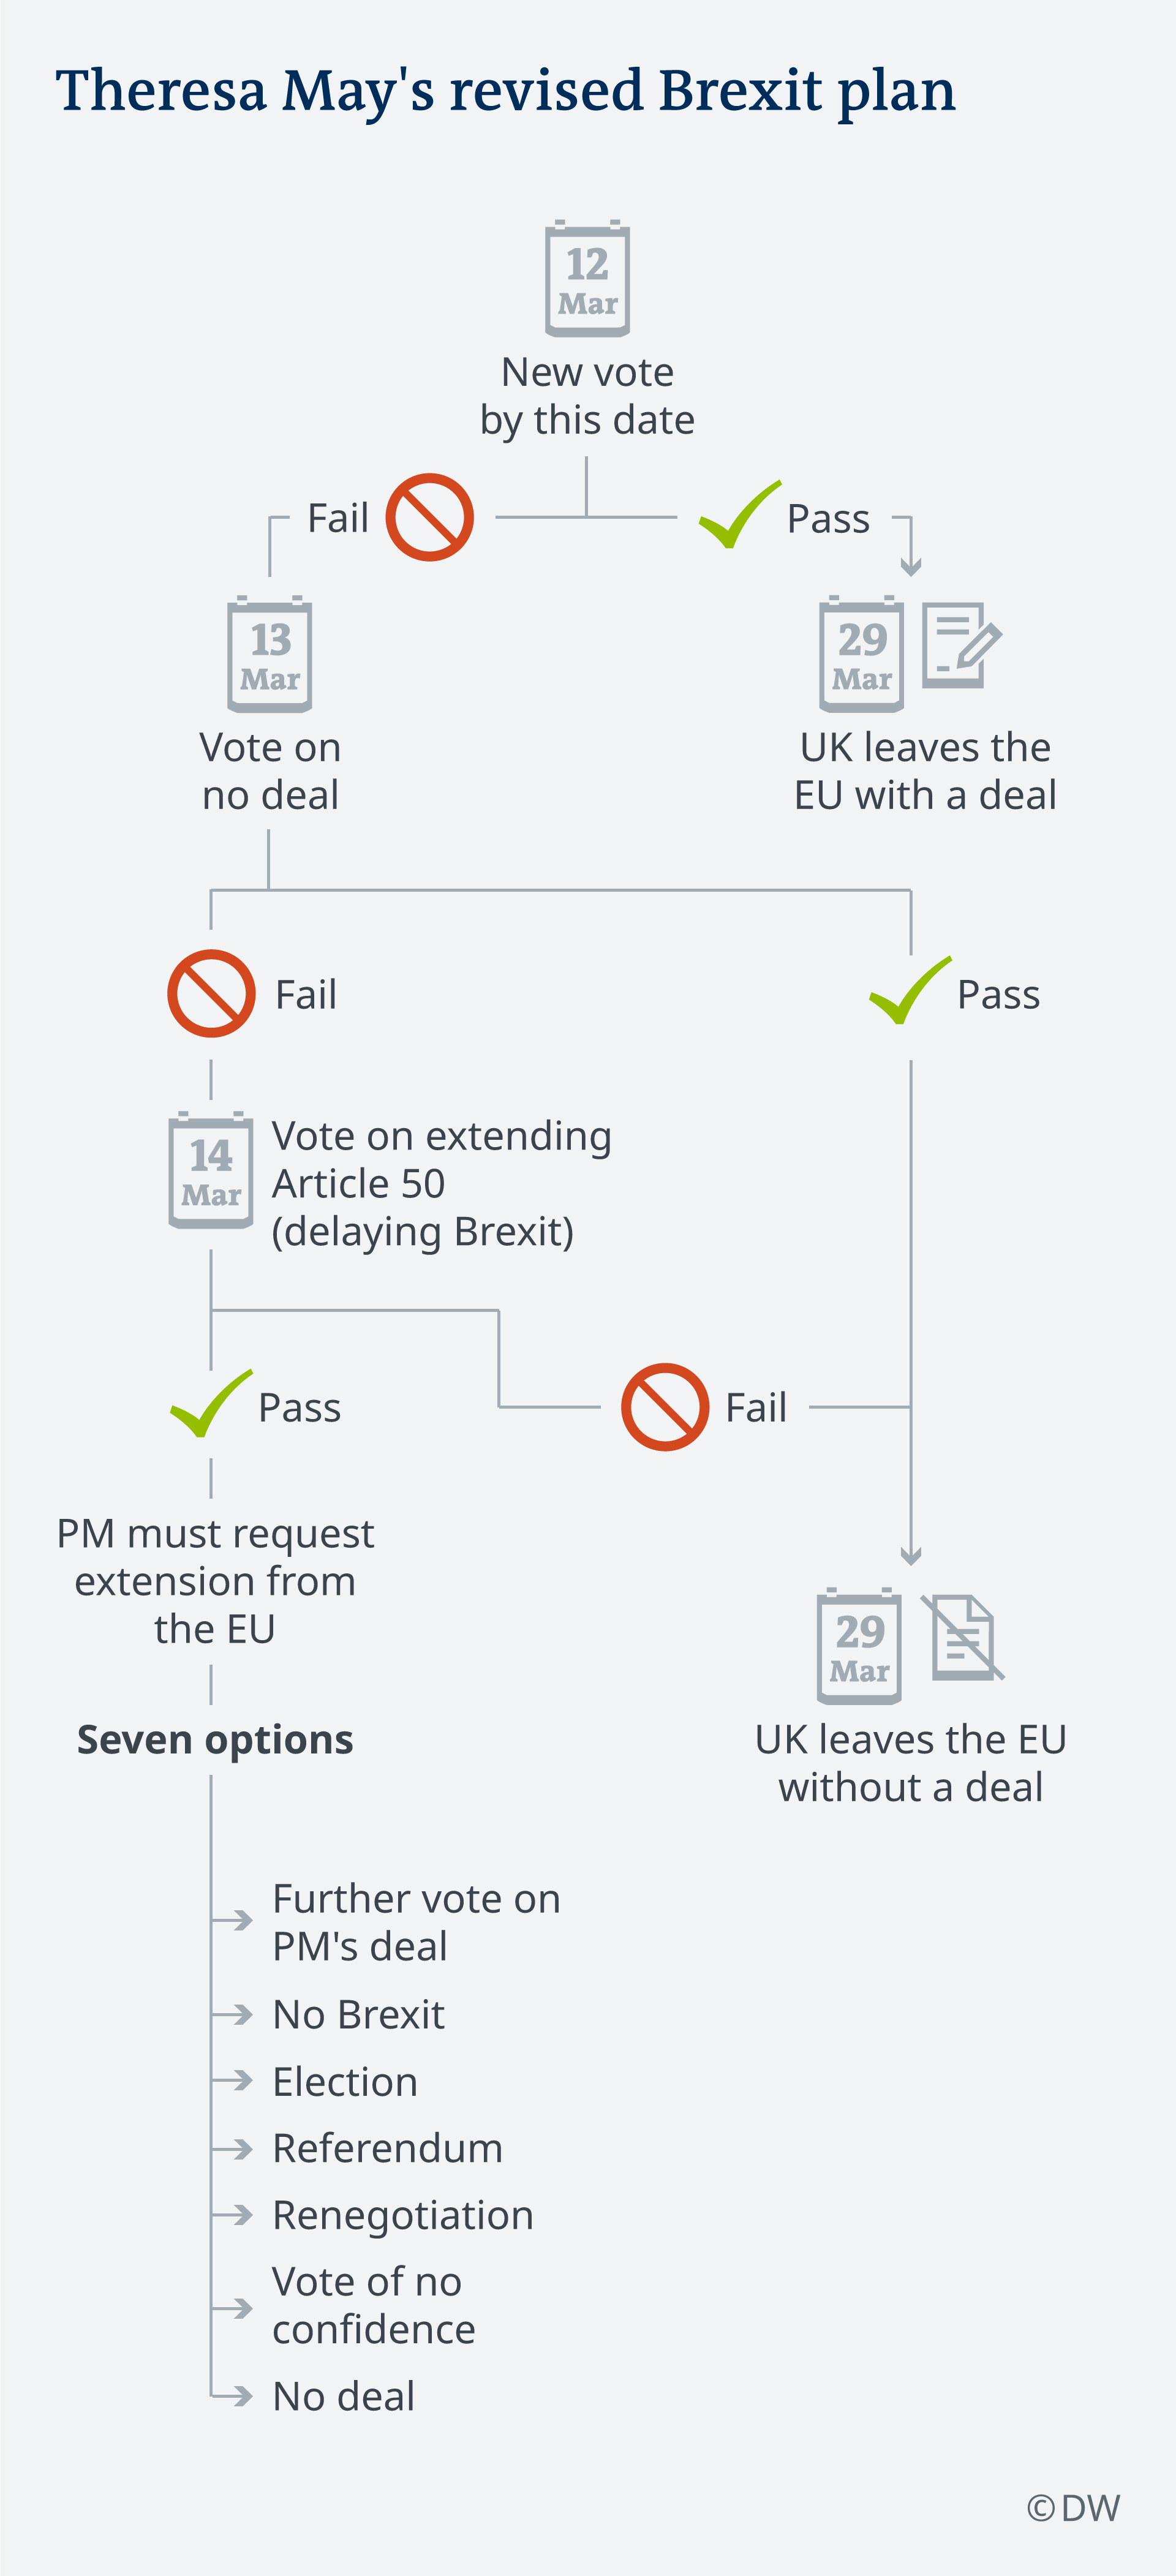 Flowchart visualizing the next steps in the Brexit process depending on the outcome of the March 12 vote on Theresa May's revised Brexit plans